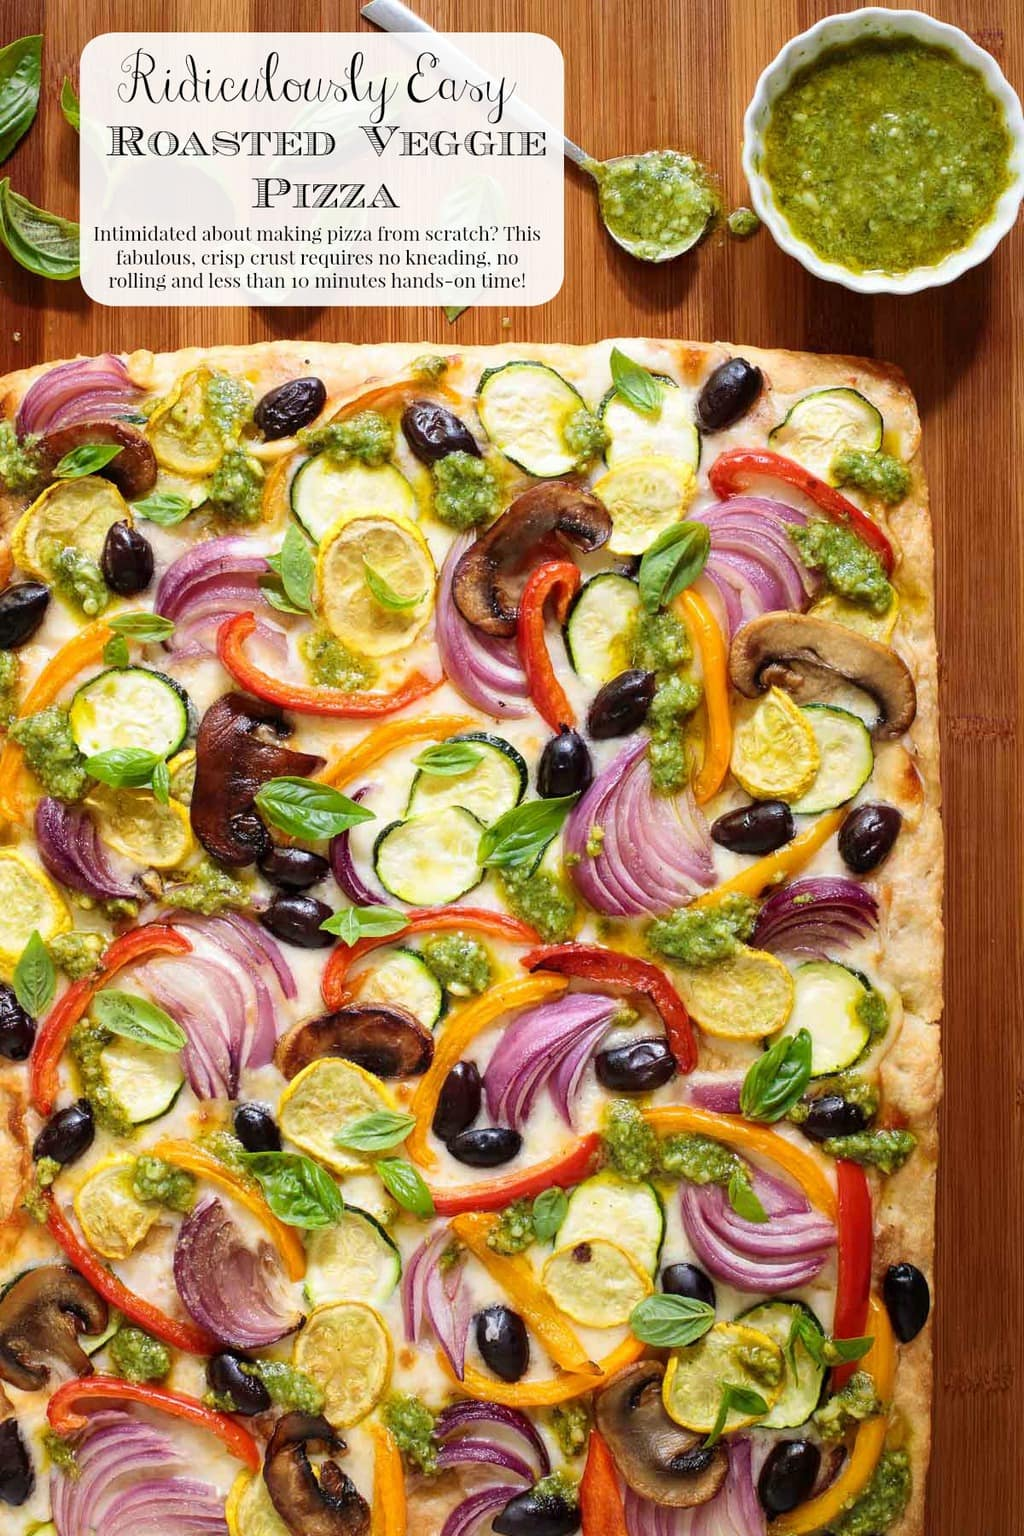 If you love pizza but feel intimidated to make it yourself, try this delicious veggie laden pizza with a fabulous, crisp, crust that requires no kneading, no rolling and less than 10 minutes hands-on time! #vegetablepizza, #easyveggiepizza, #easypizza, #nokneadnorollpizzacrust